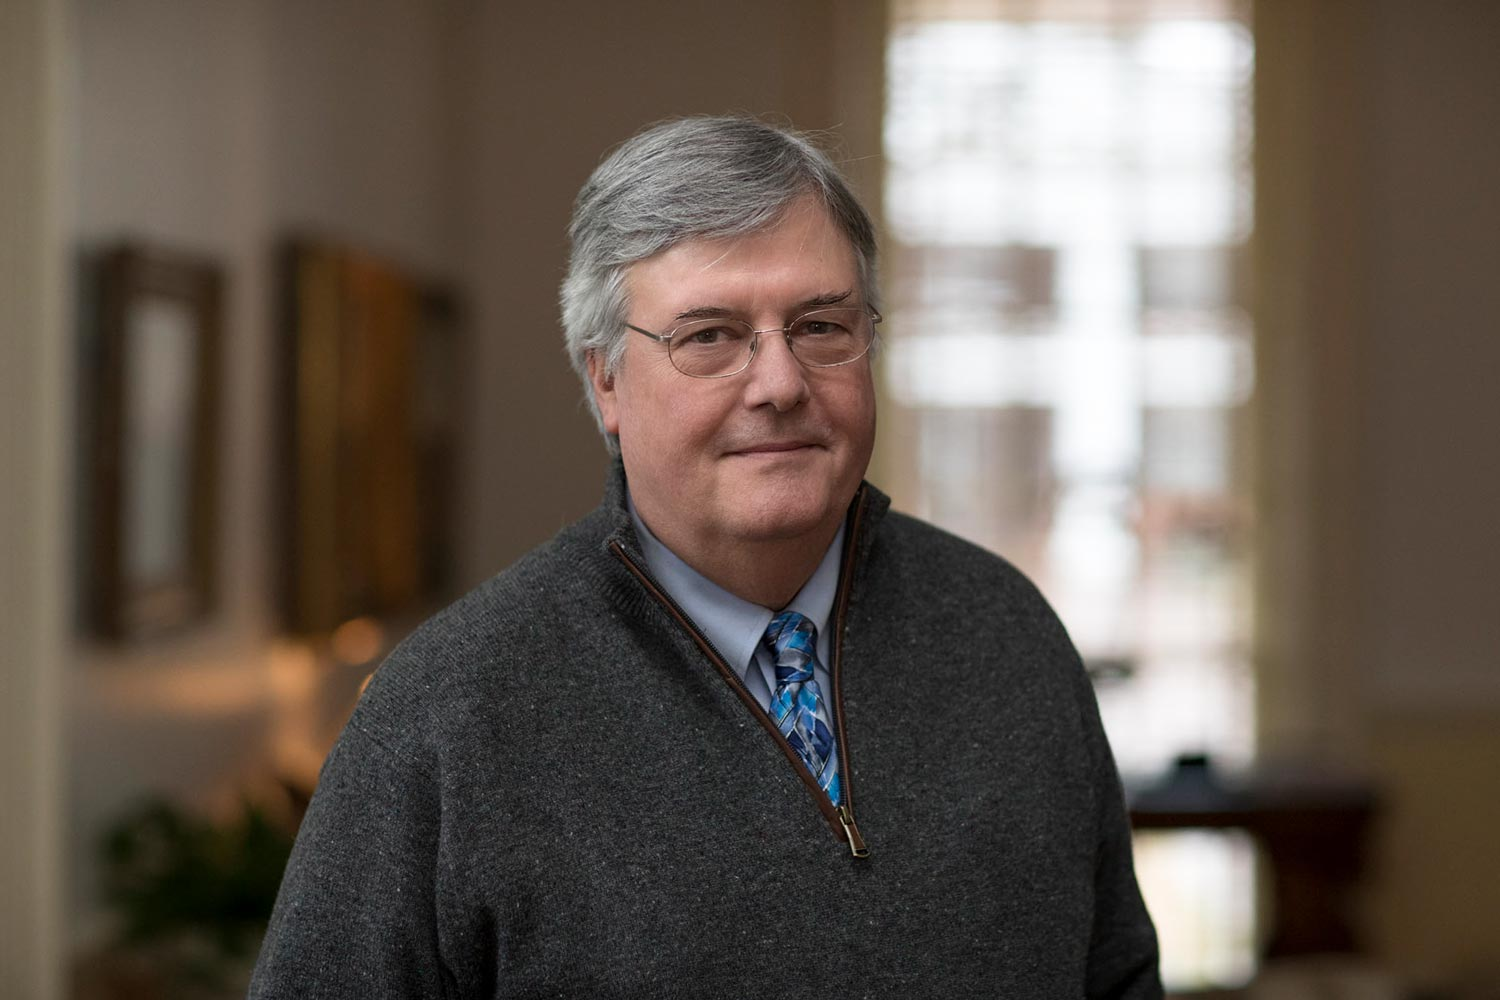 University Librarian John Unsworth worked with The HistoryMakers in 2008 with a previous Mellon grant.